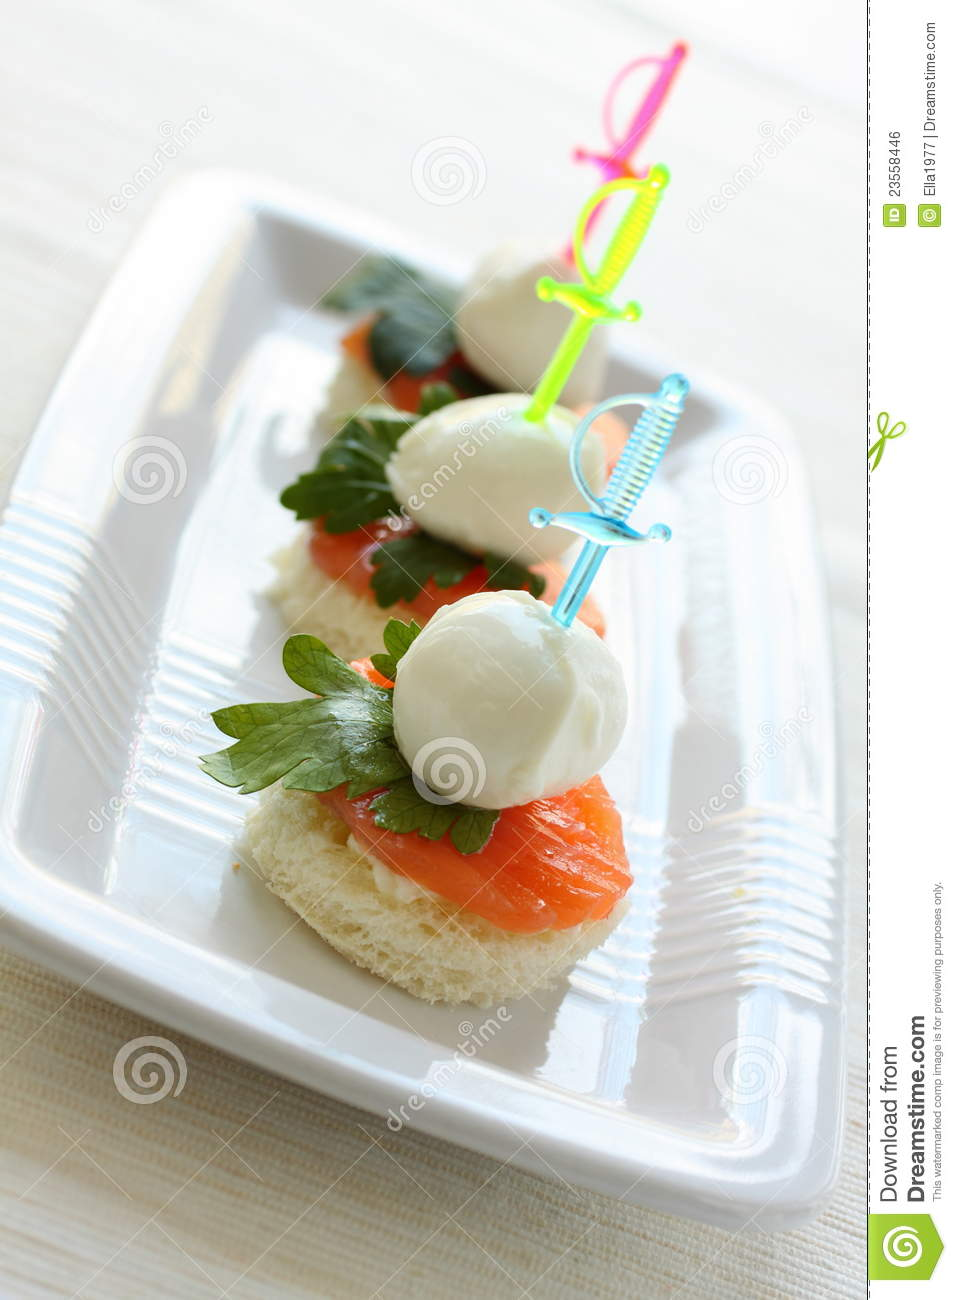 Mozzarella cheese canape royalty free stock image image for Mozzarella canape